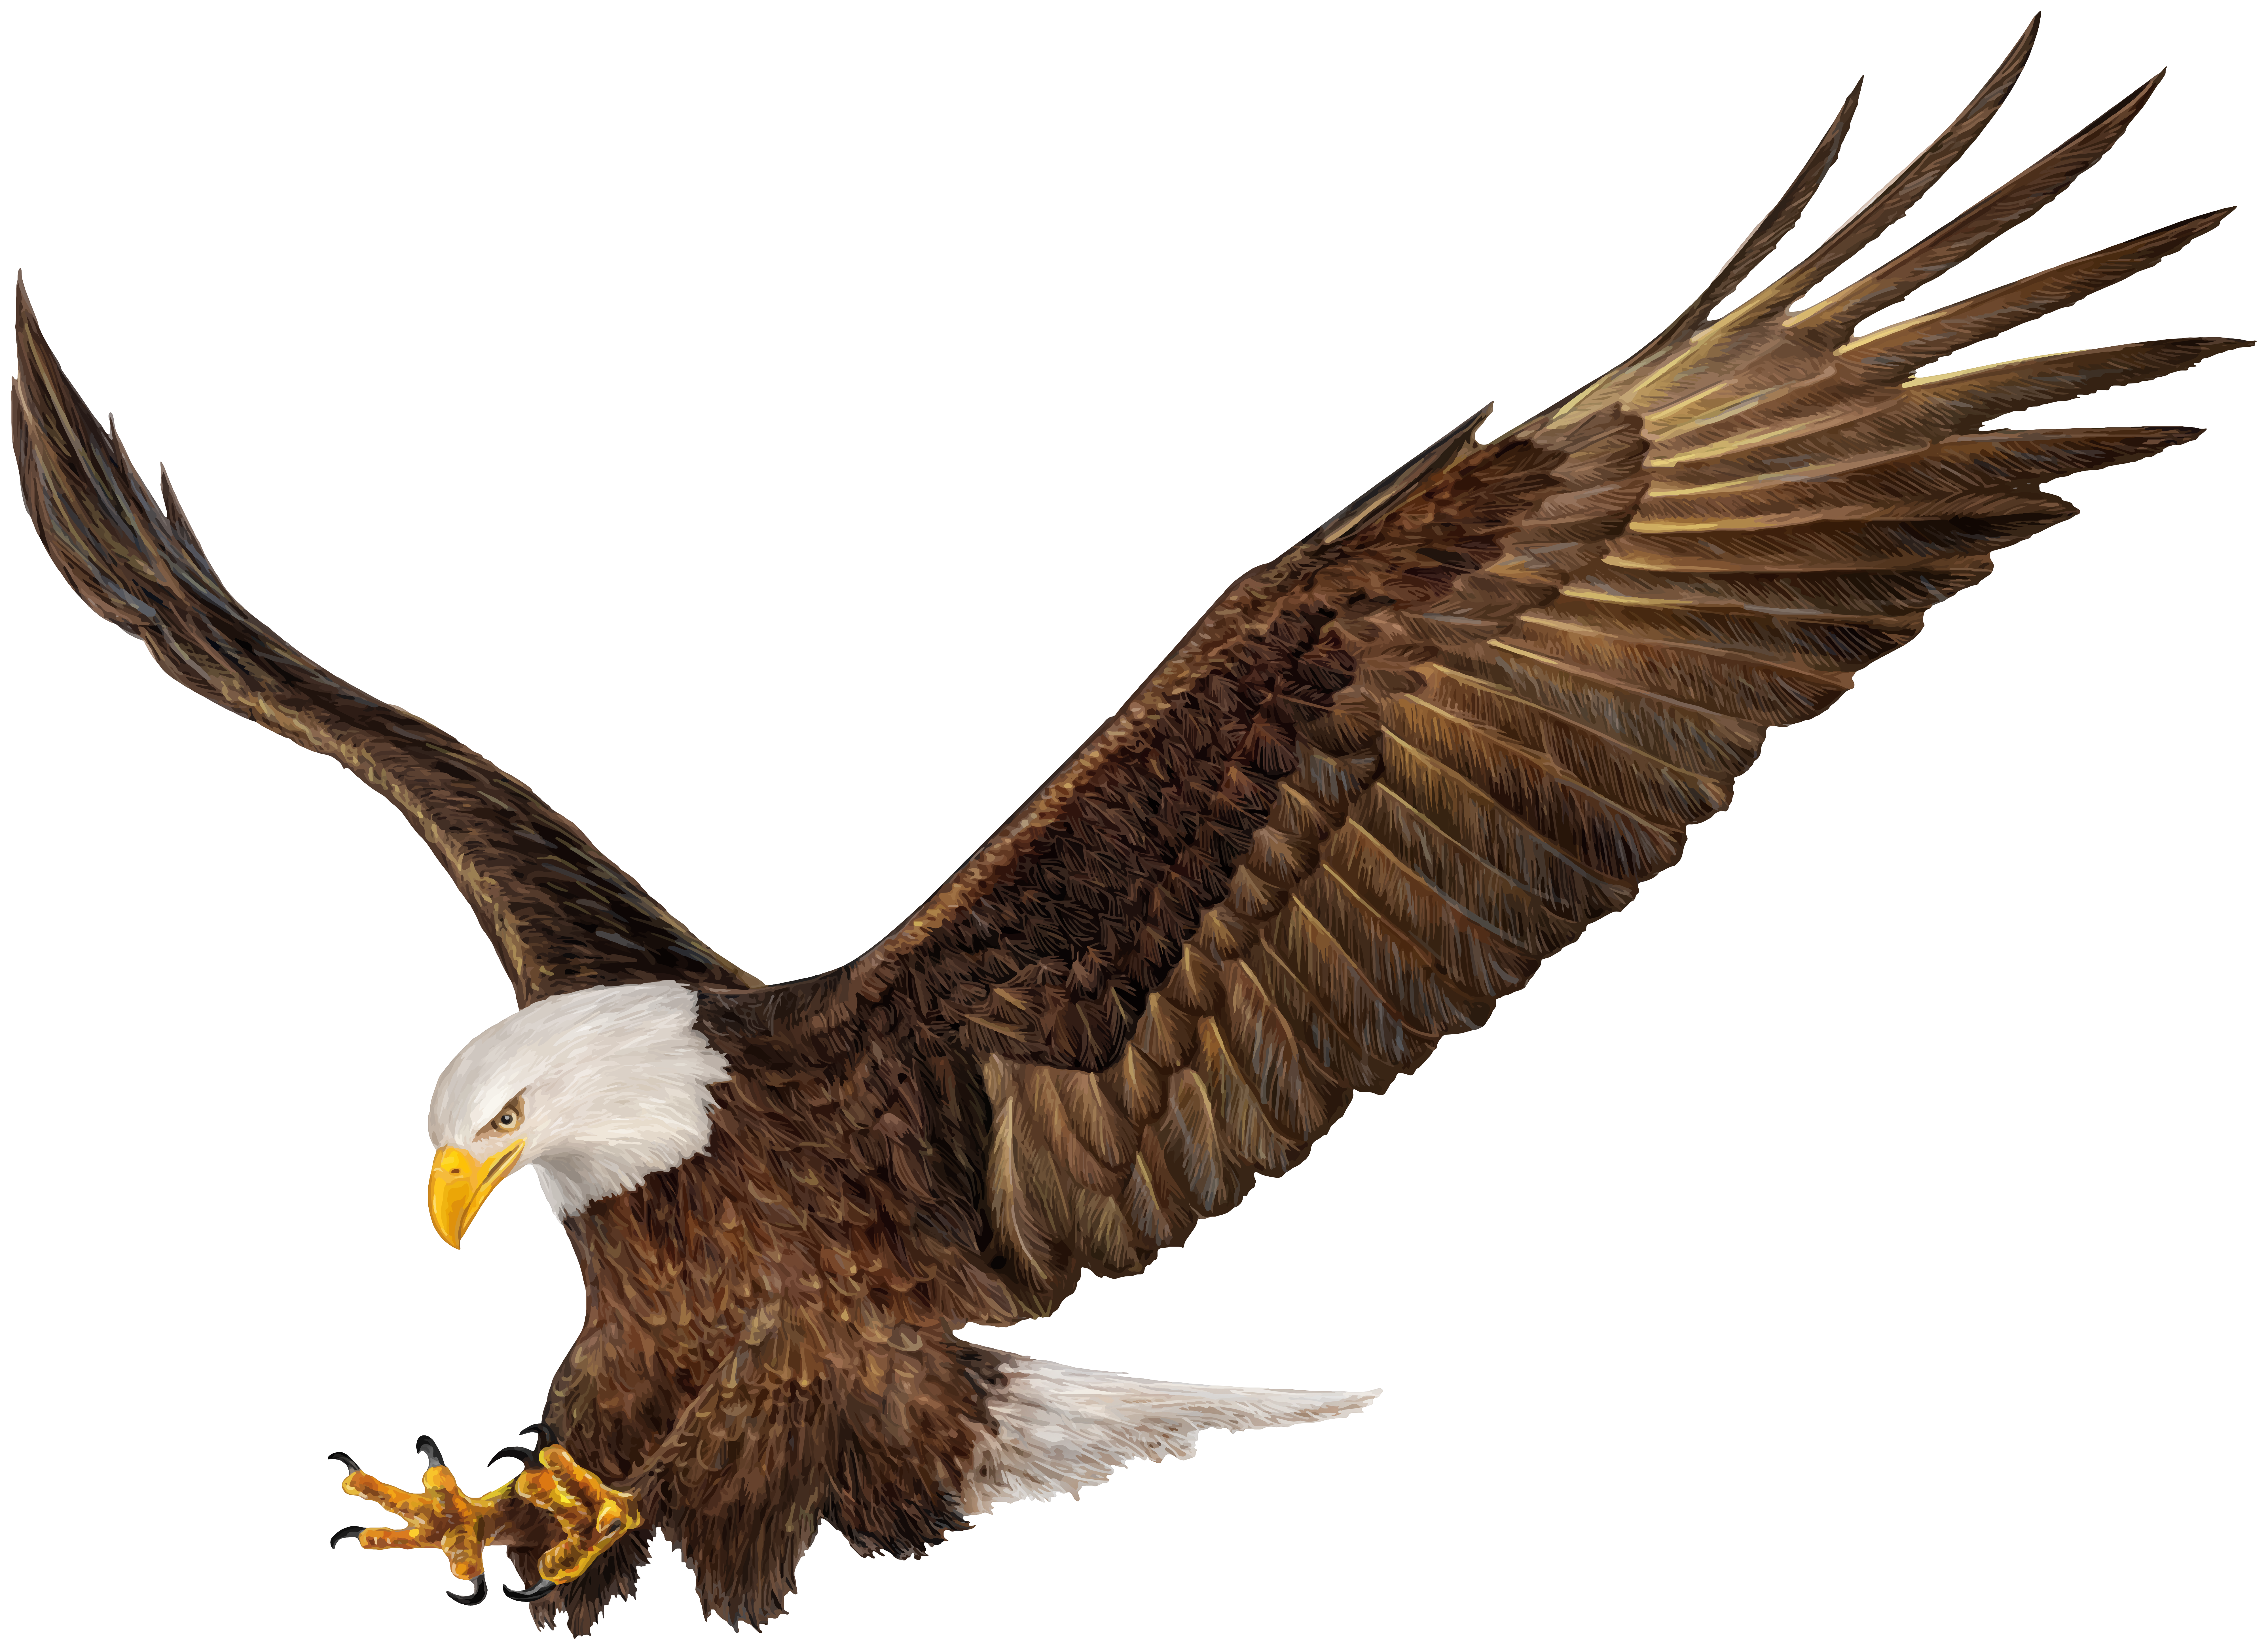 Eagle png. American clip art image